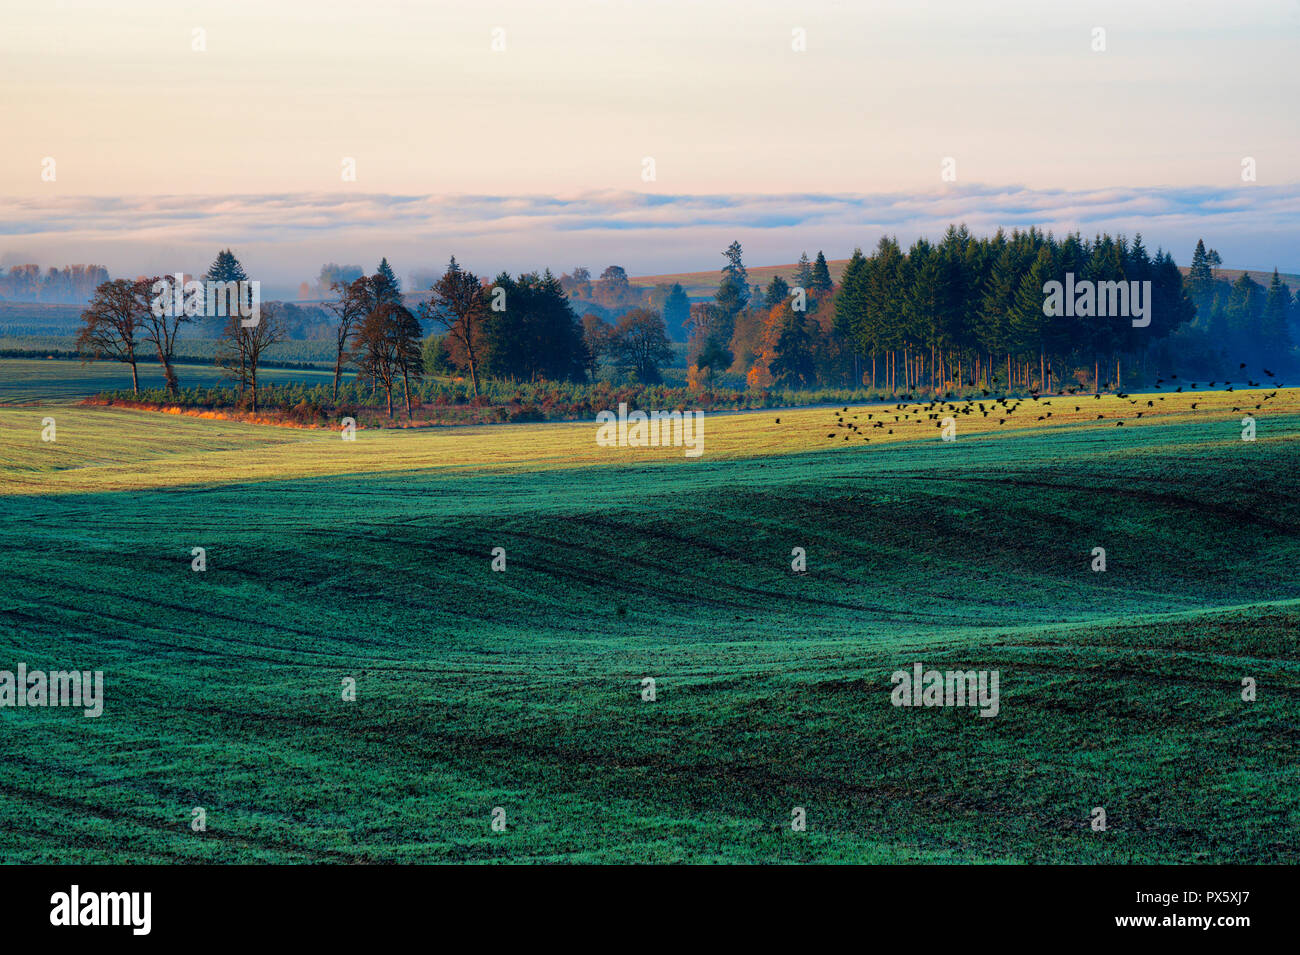 Early morning sunrise lightens the farm ground burning off ground fog, that still lingers amongst trees, while black birds take flight, near Aumsville - Stock Image